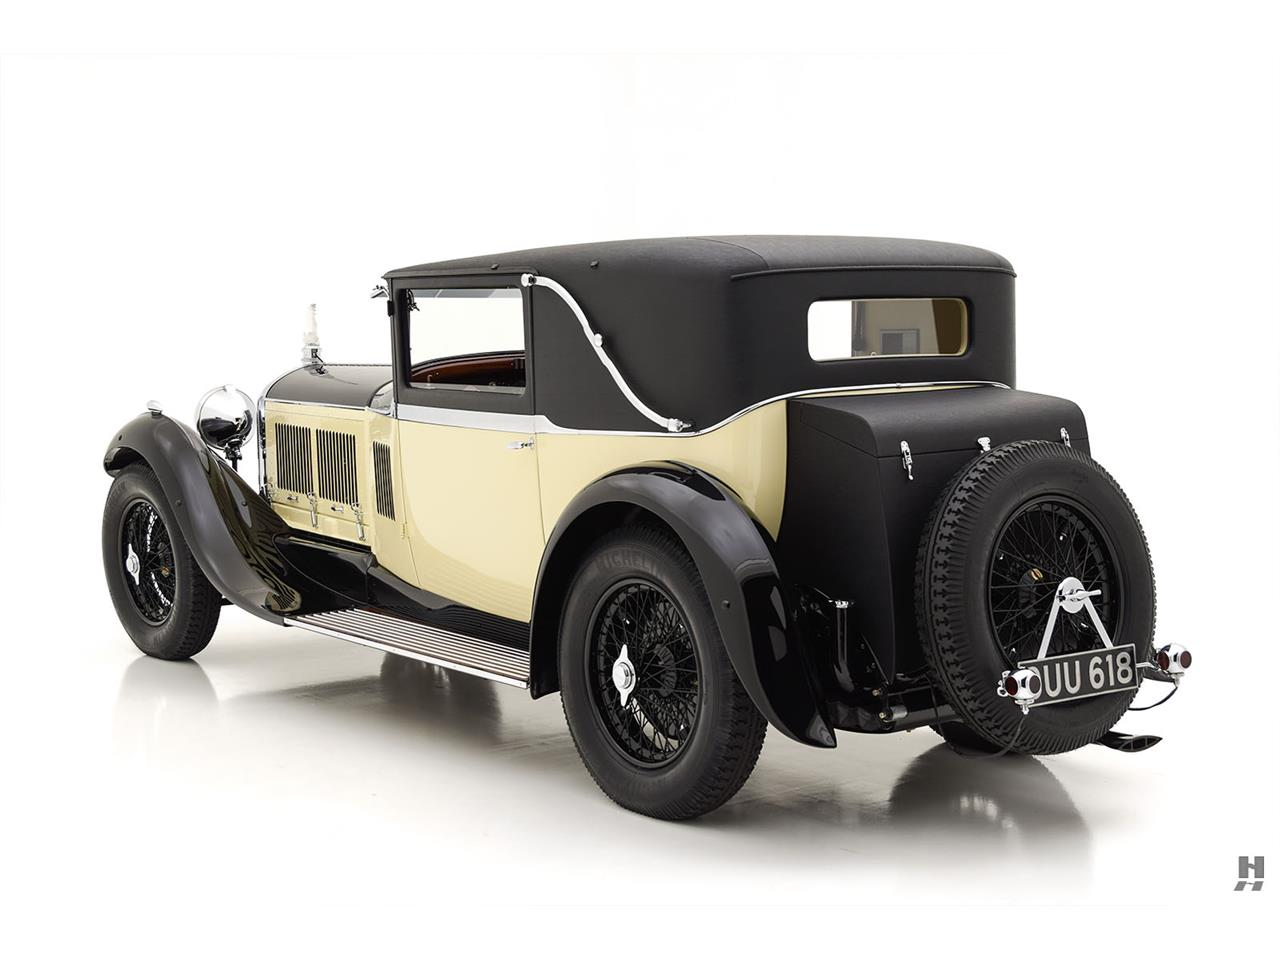 Large Picture of '30 Bentley Speed Six Tourer located in Missouri Offered by Hyman Ltd. Classic Cars - PYOI